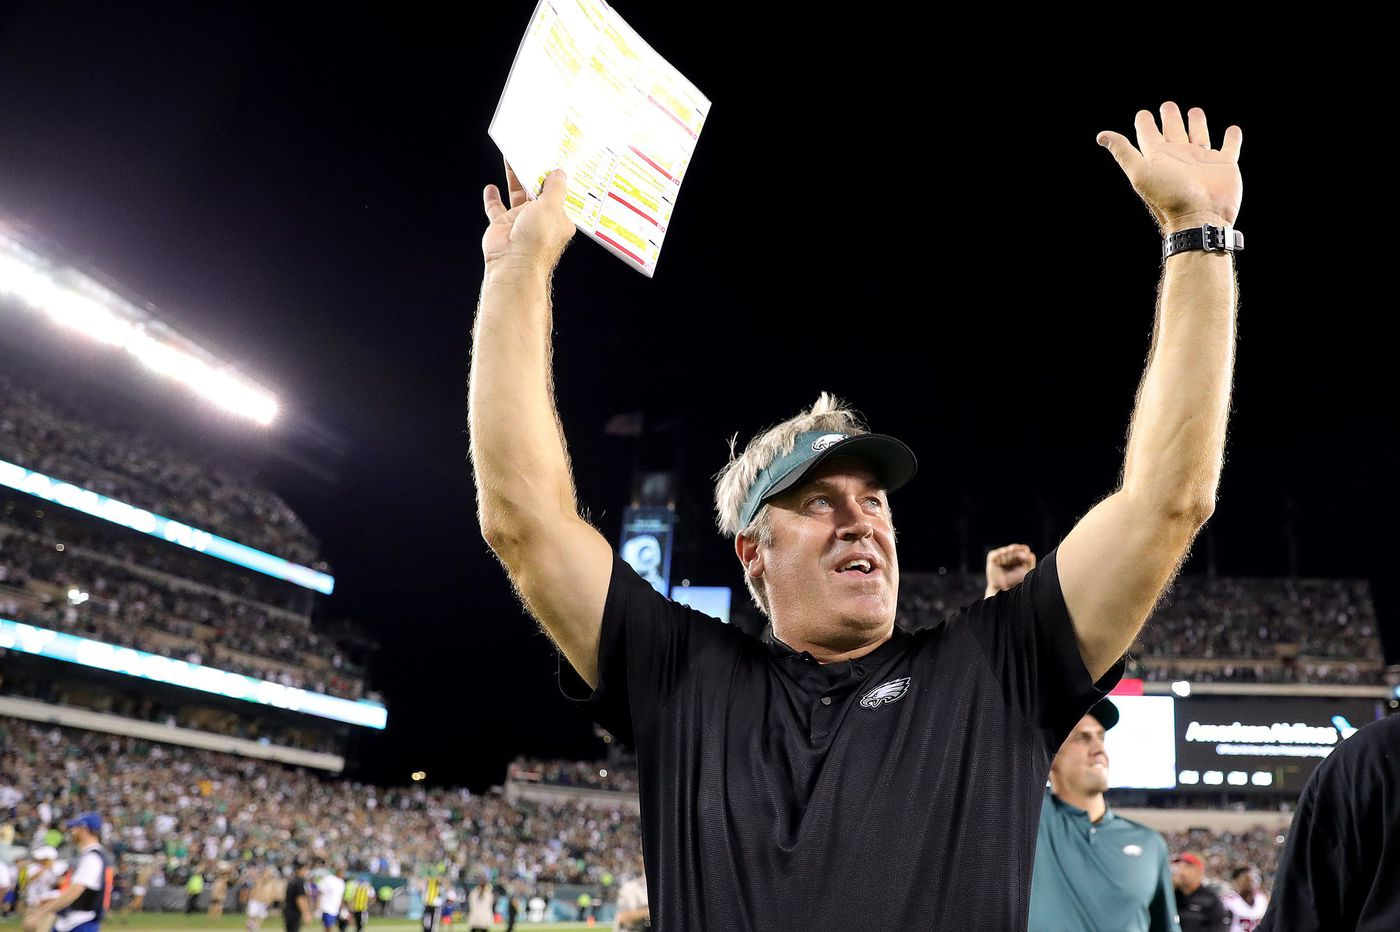 The Eagles' unseen edge? Maybe it's 'The Doug Effect.' | Mike Sielski